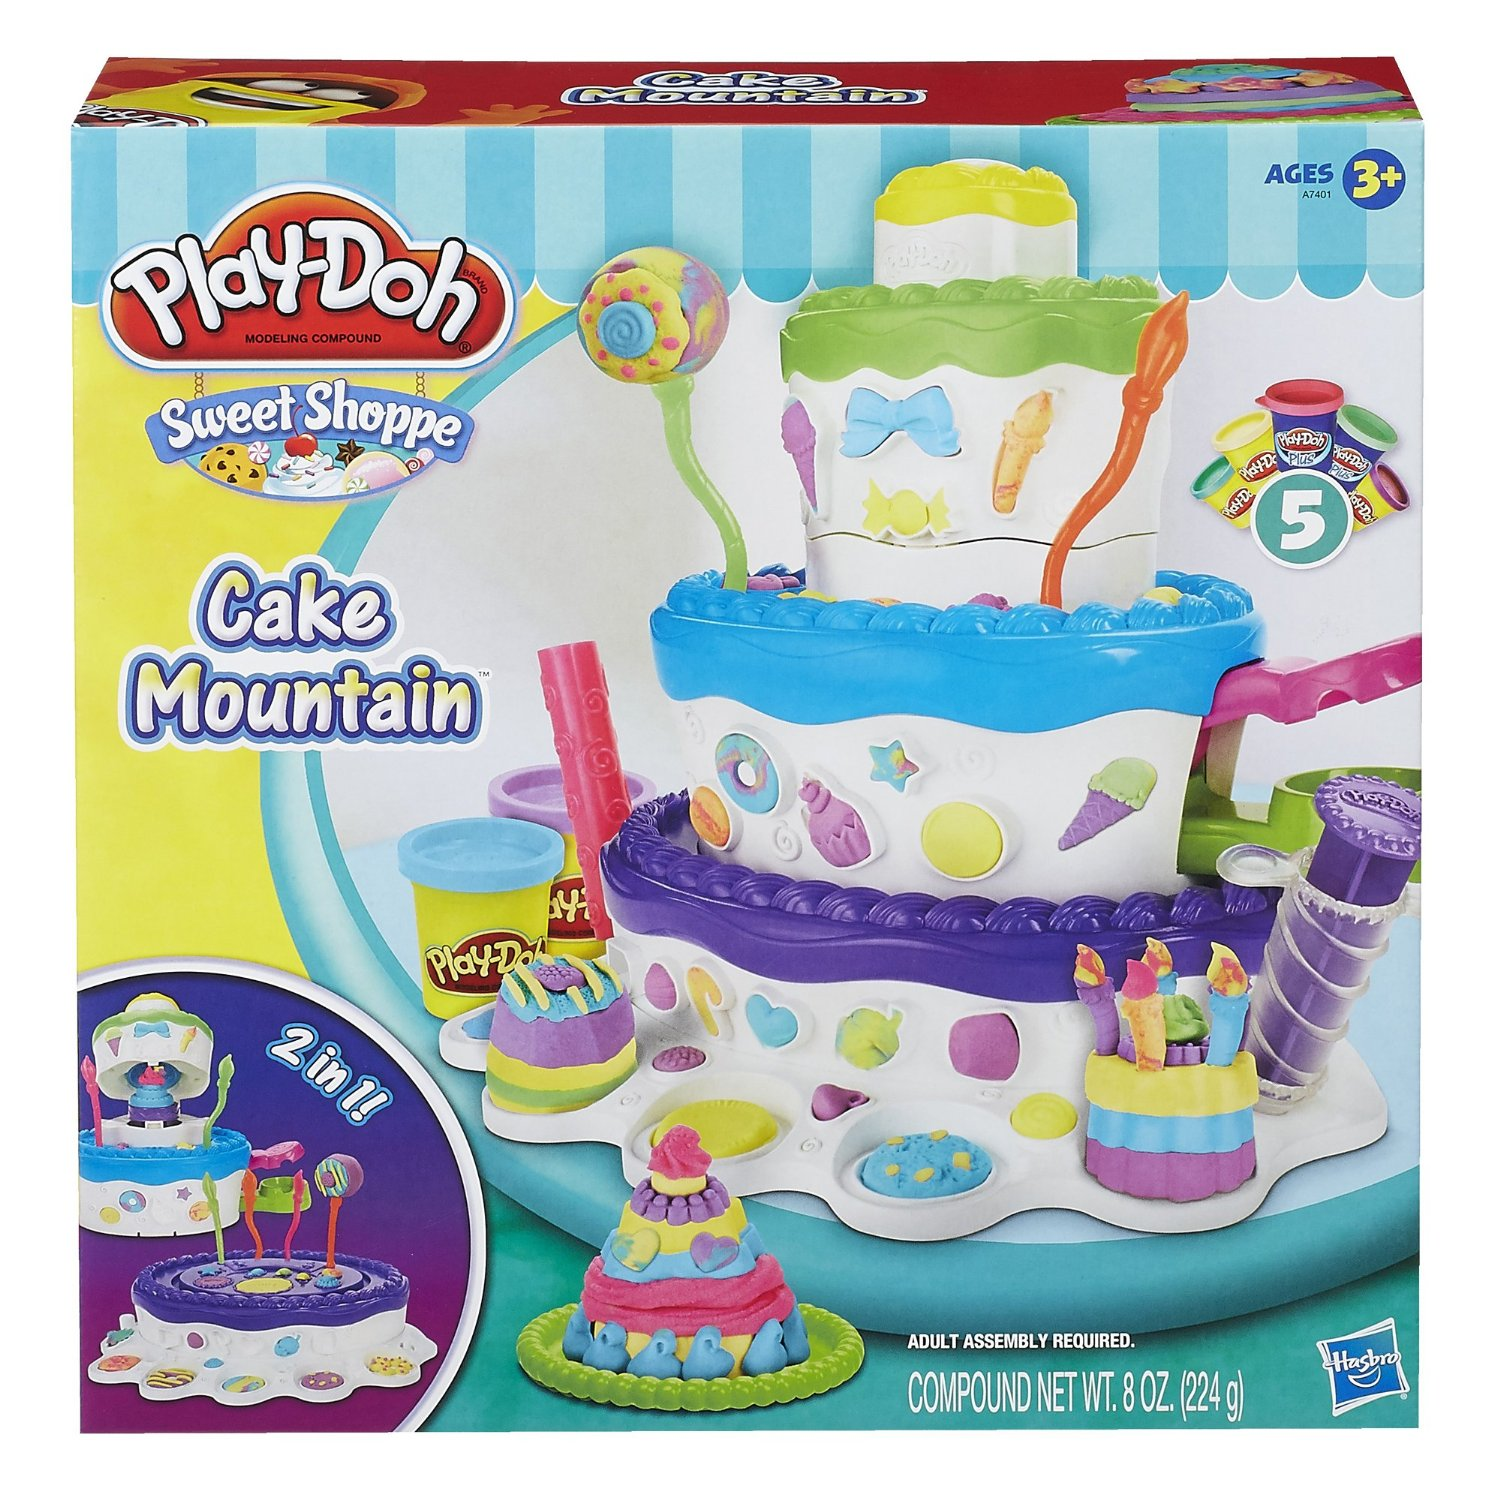 Play-Doh Sweet Shoppe Cake Mountain Playset Only $7.59! (Reg. $20!)